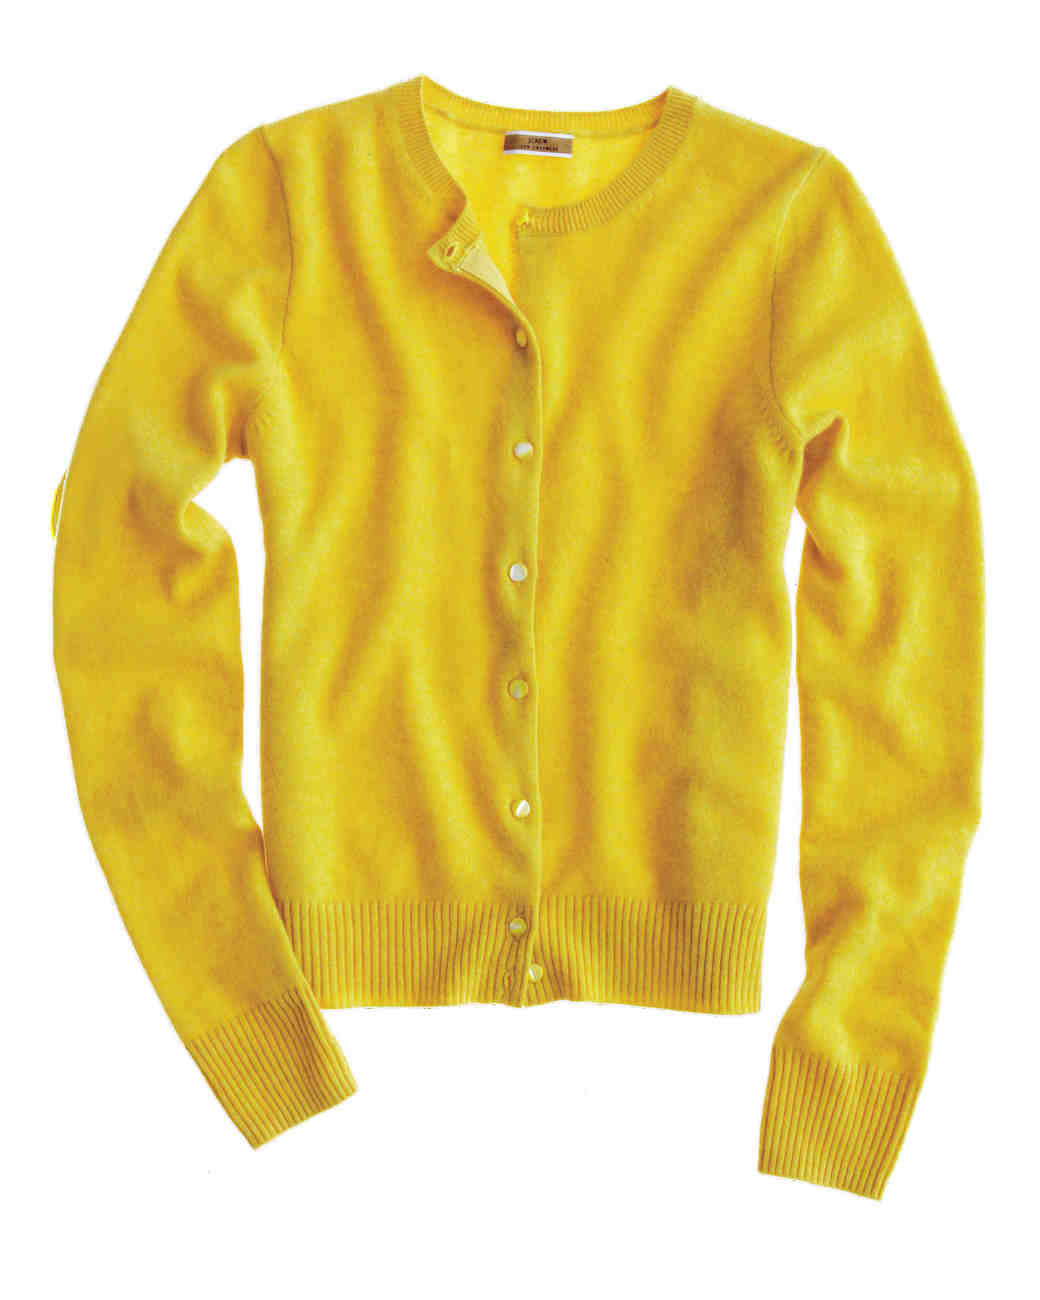 travel-accessories-yellow-cardigan-mwd107604.jpg